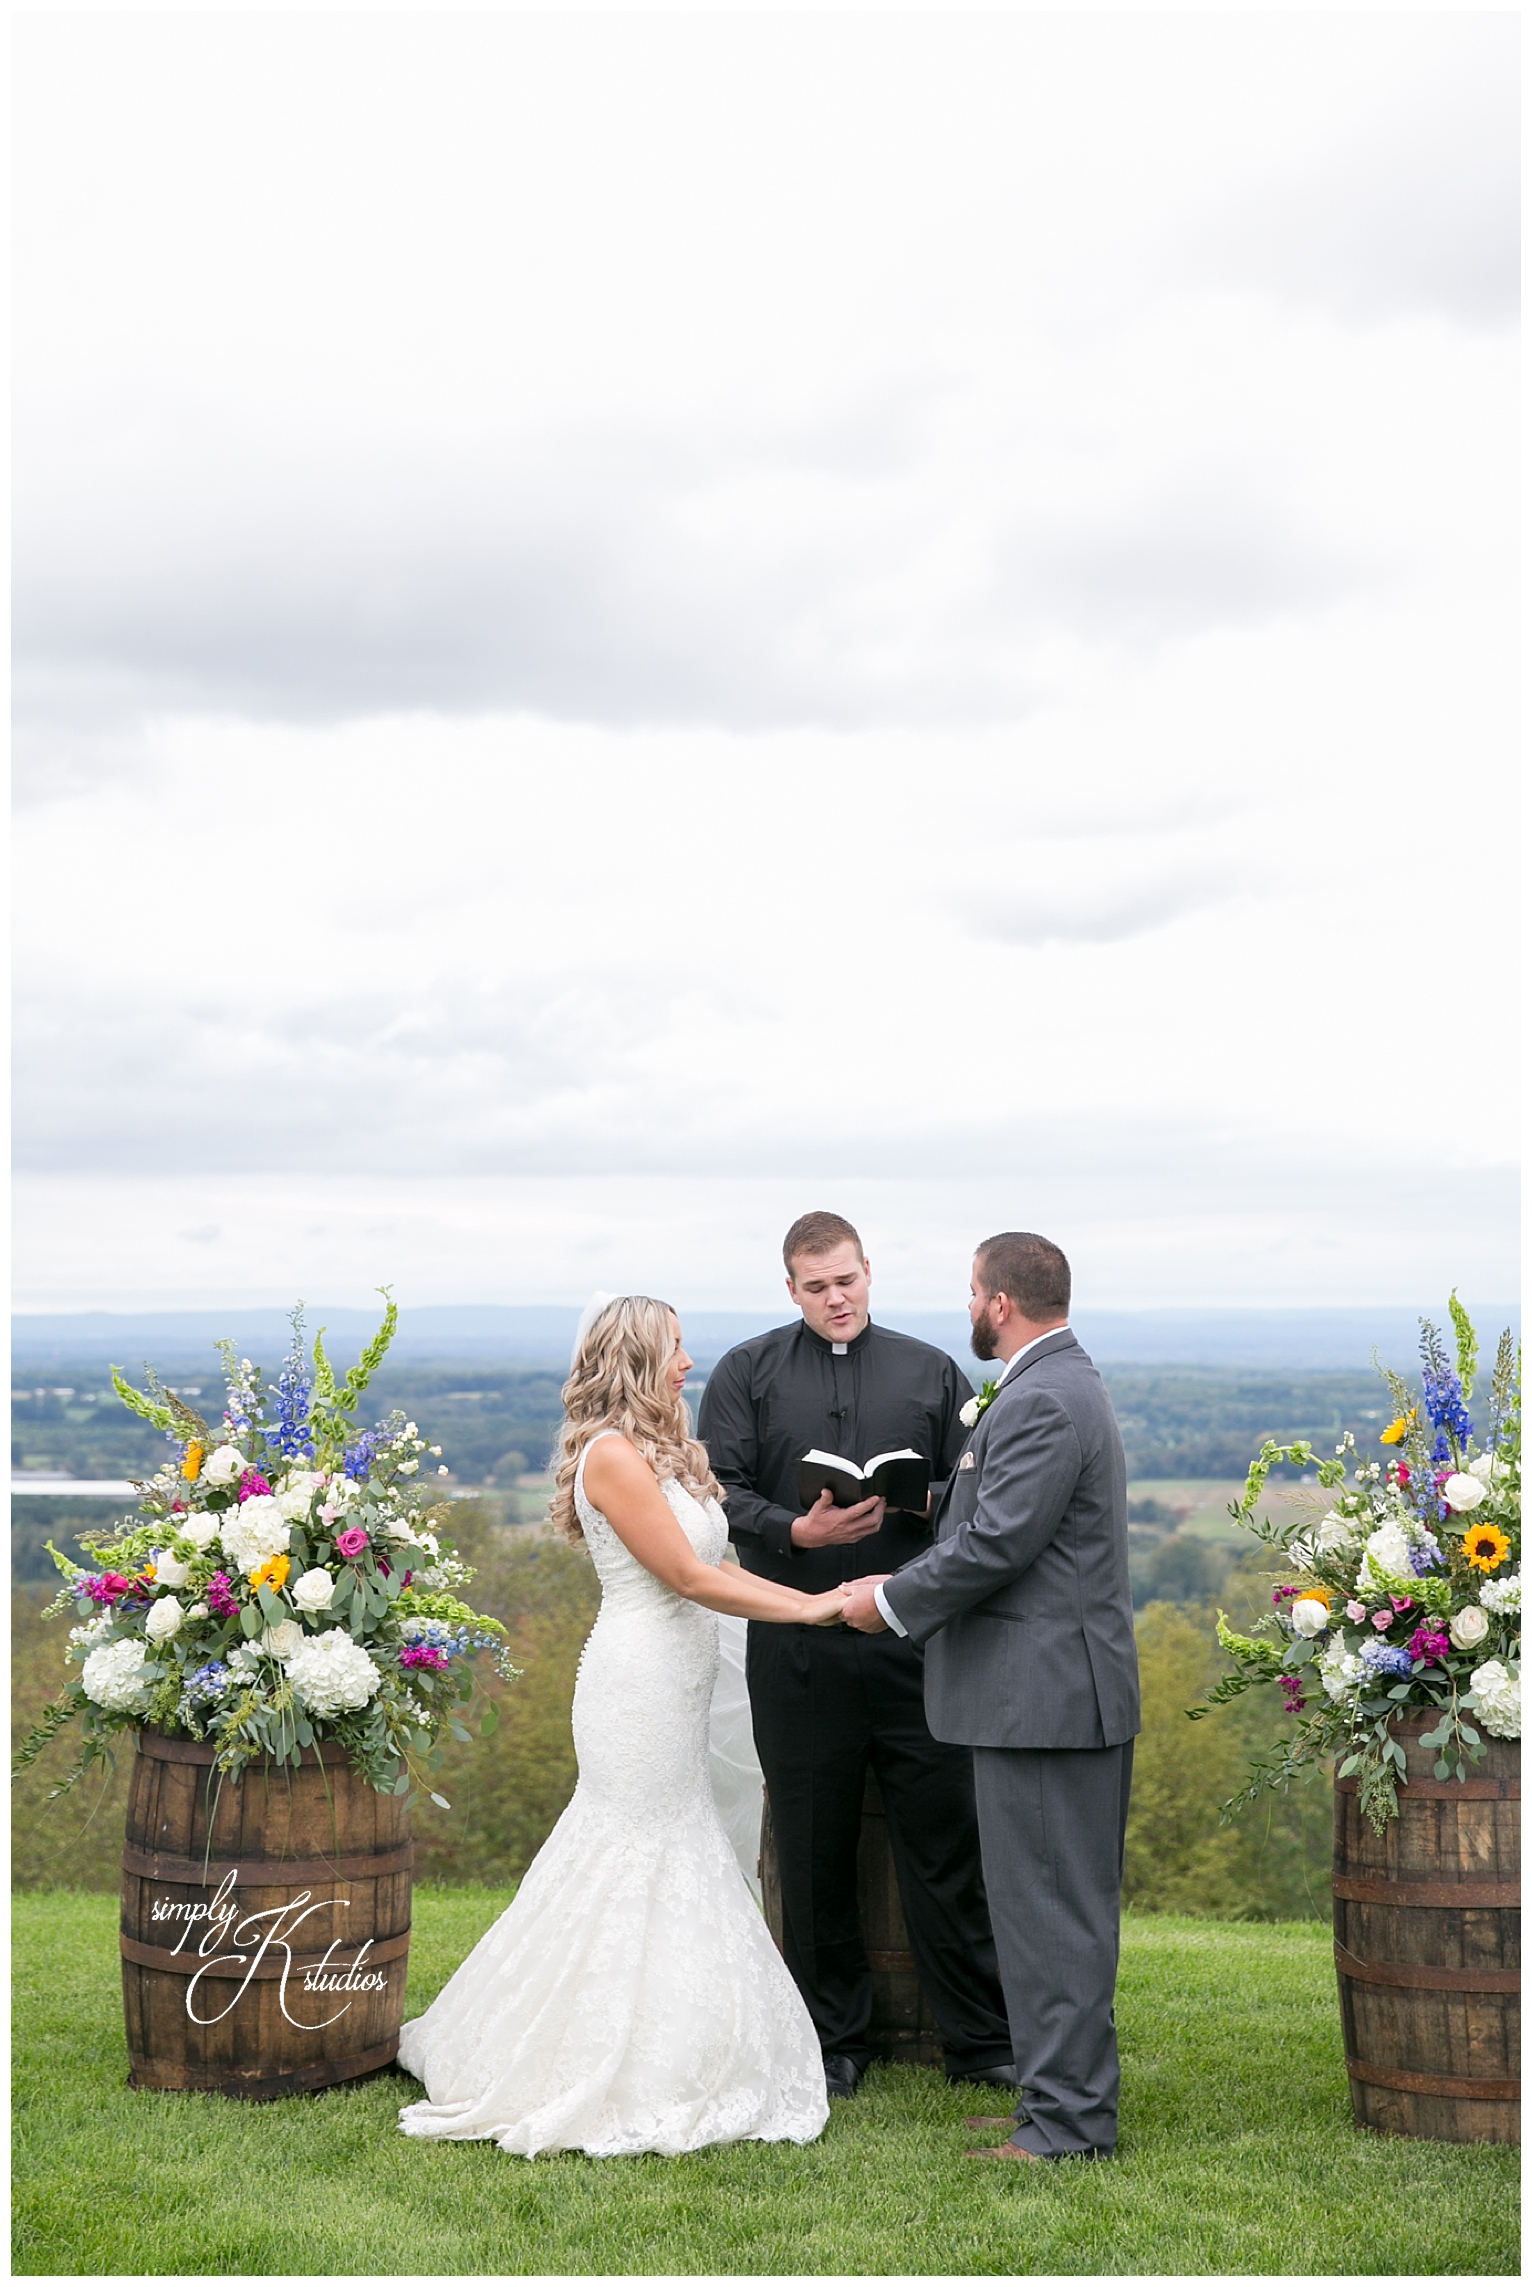 Wedding Ceremony Photographer in CT.jpg